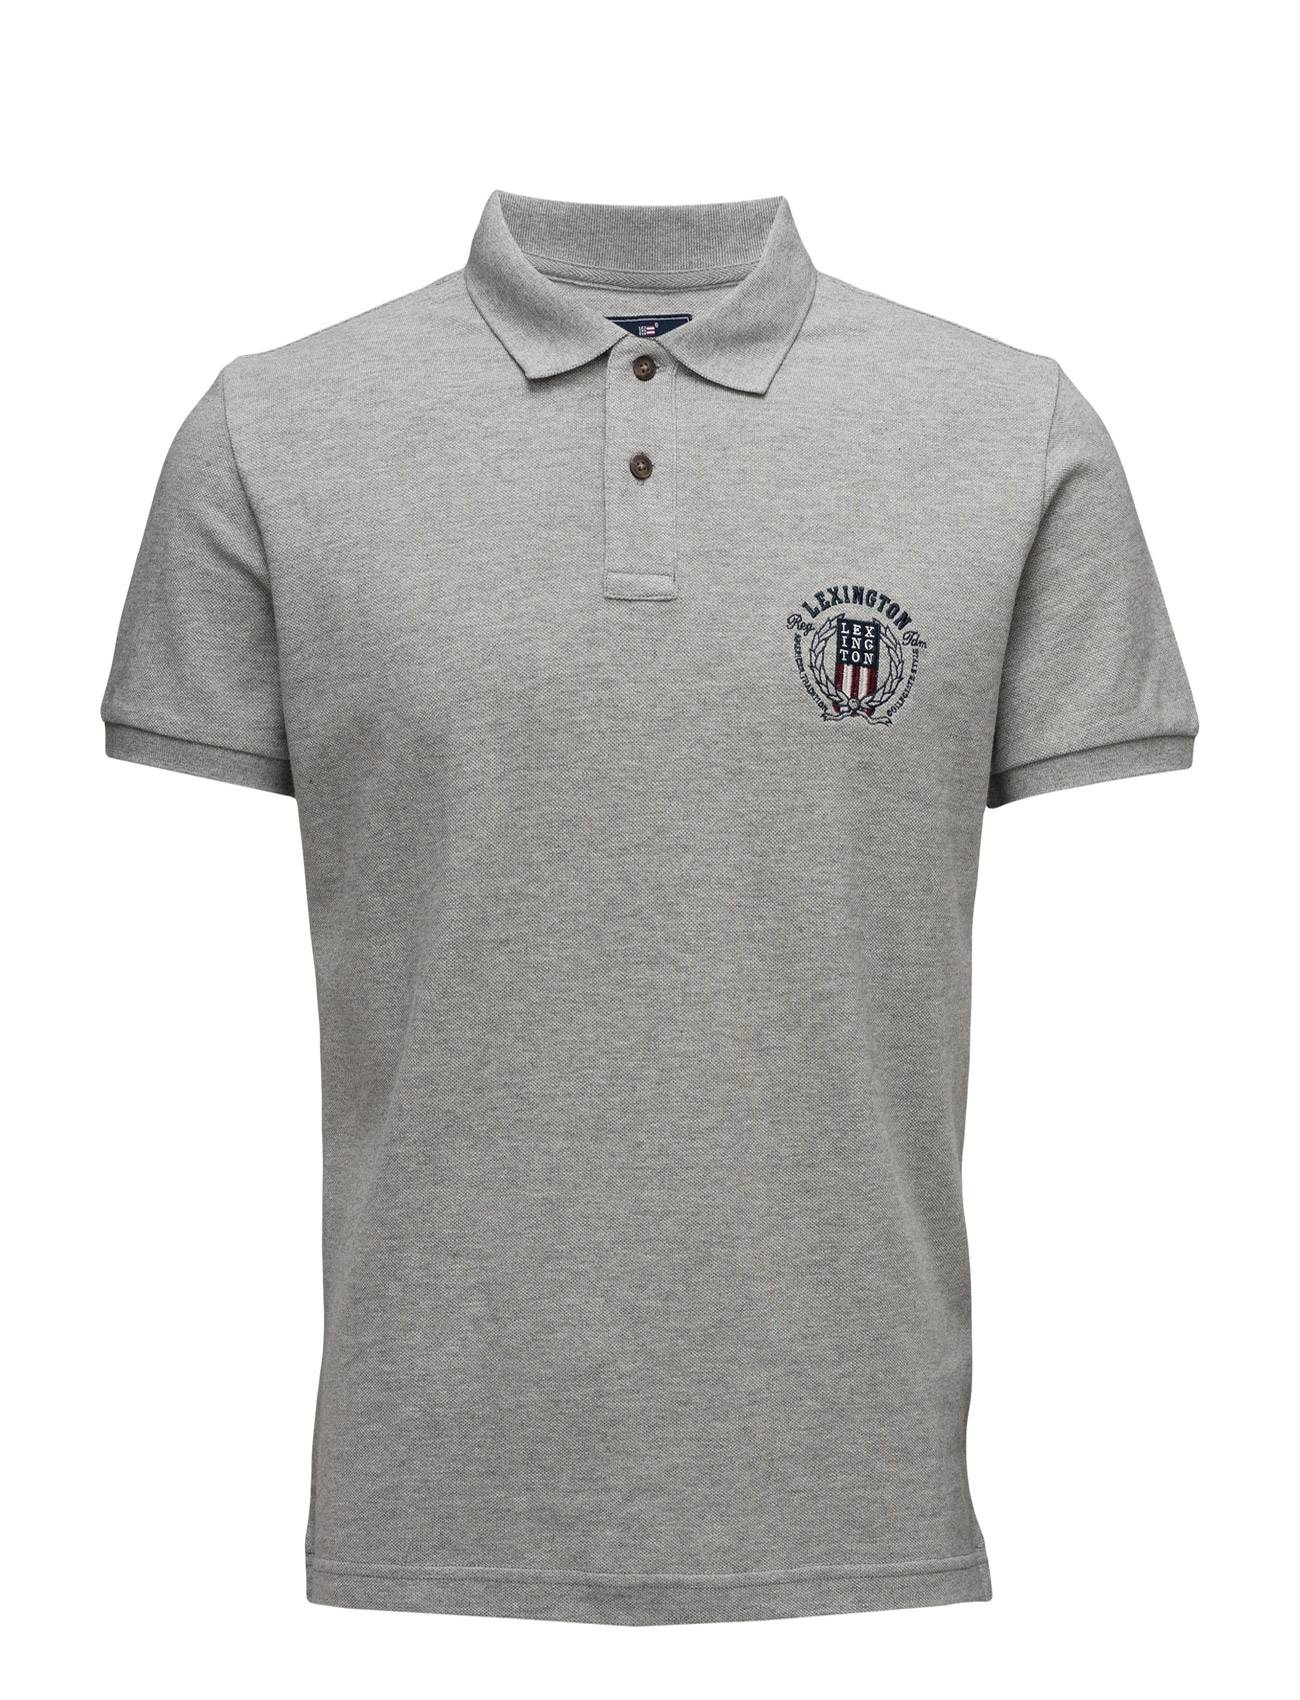 Lexington Company Oscar Polo